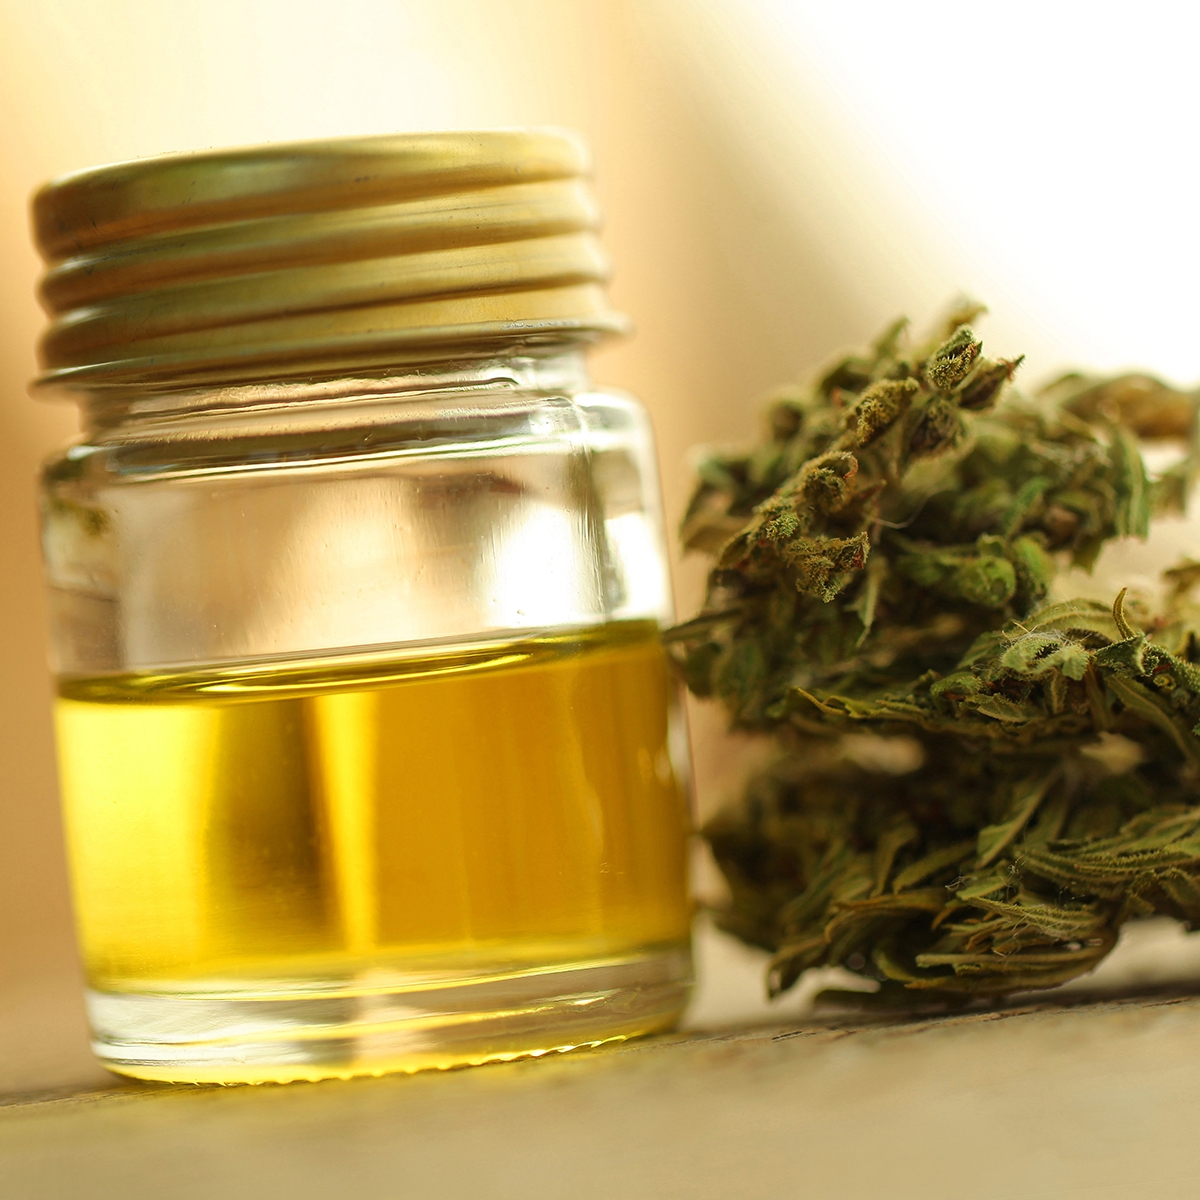 1800x1200_all_about_cbd_oil_slideshow.jpg